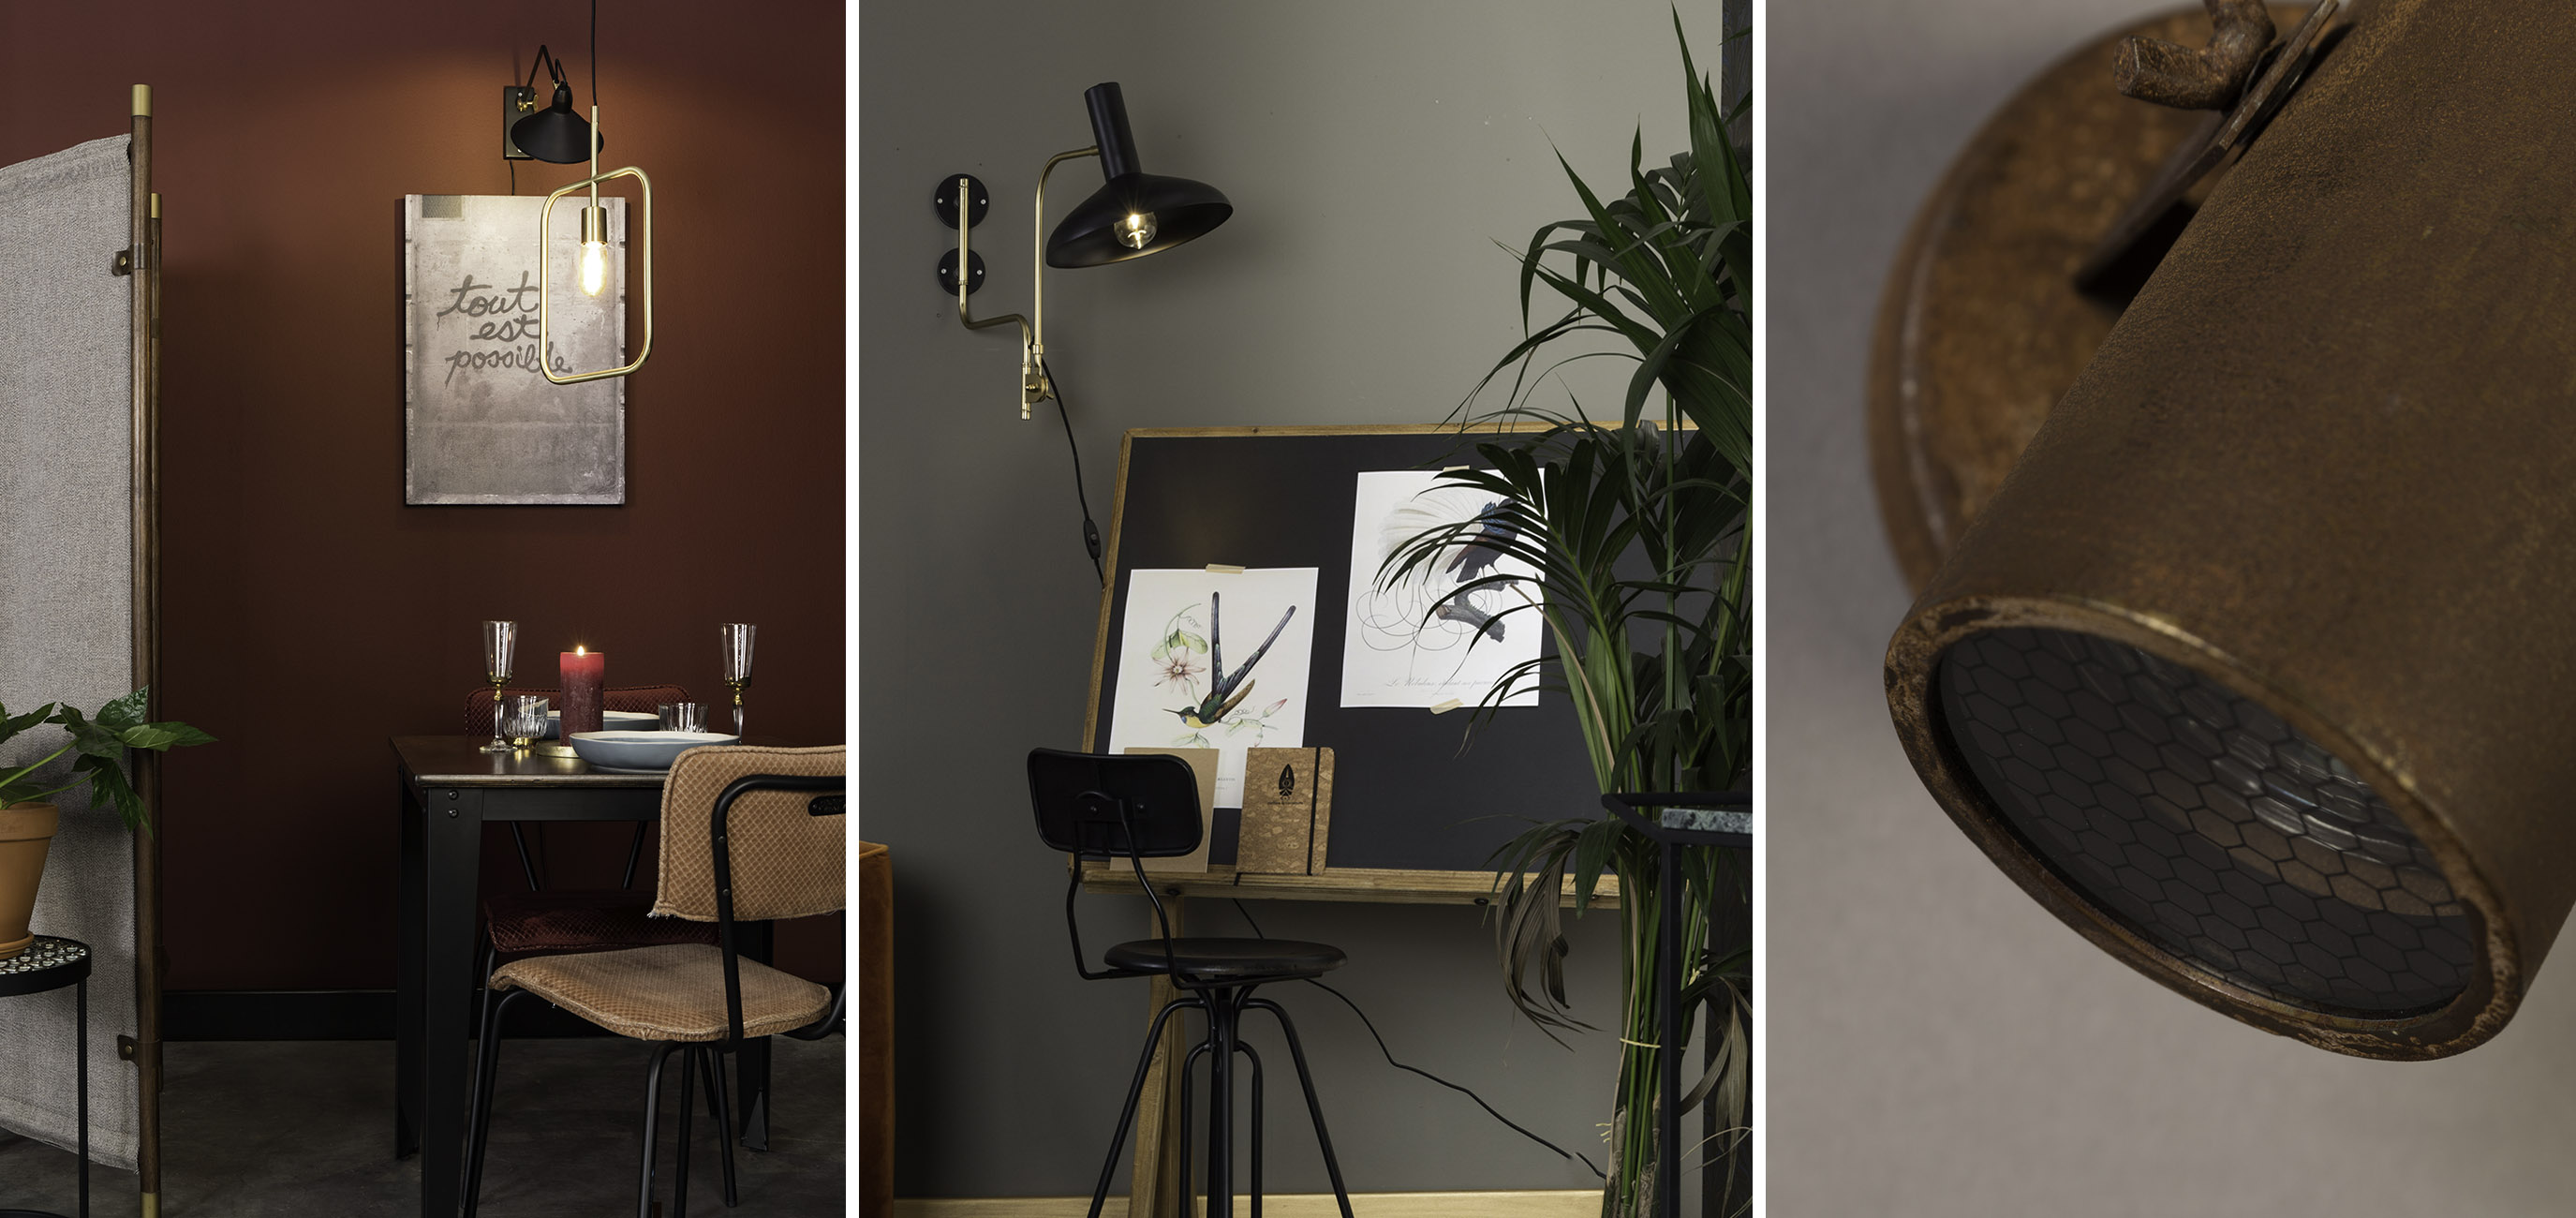 Highlight your favourite items with lighting - Dutchbone